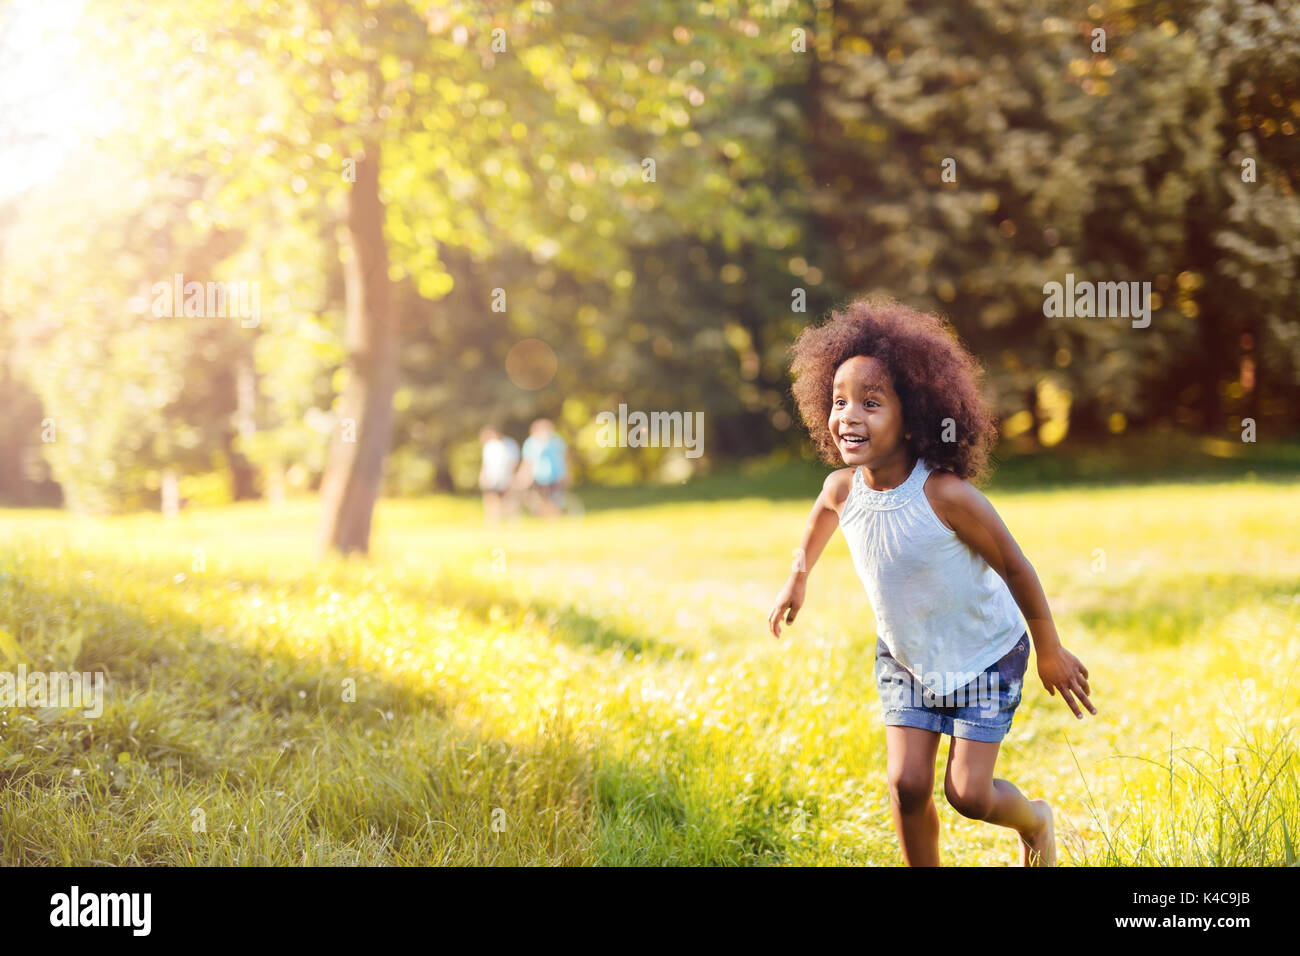 Portrait of happy little girl running on grass land Stock Photo